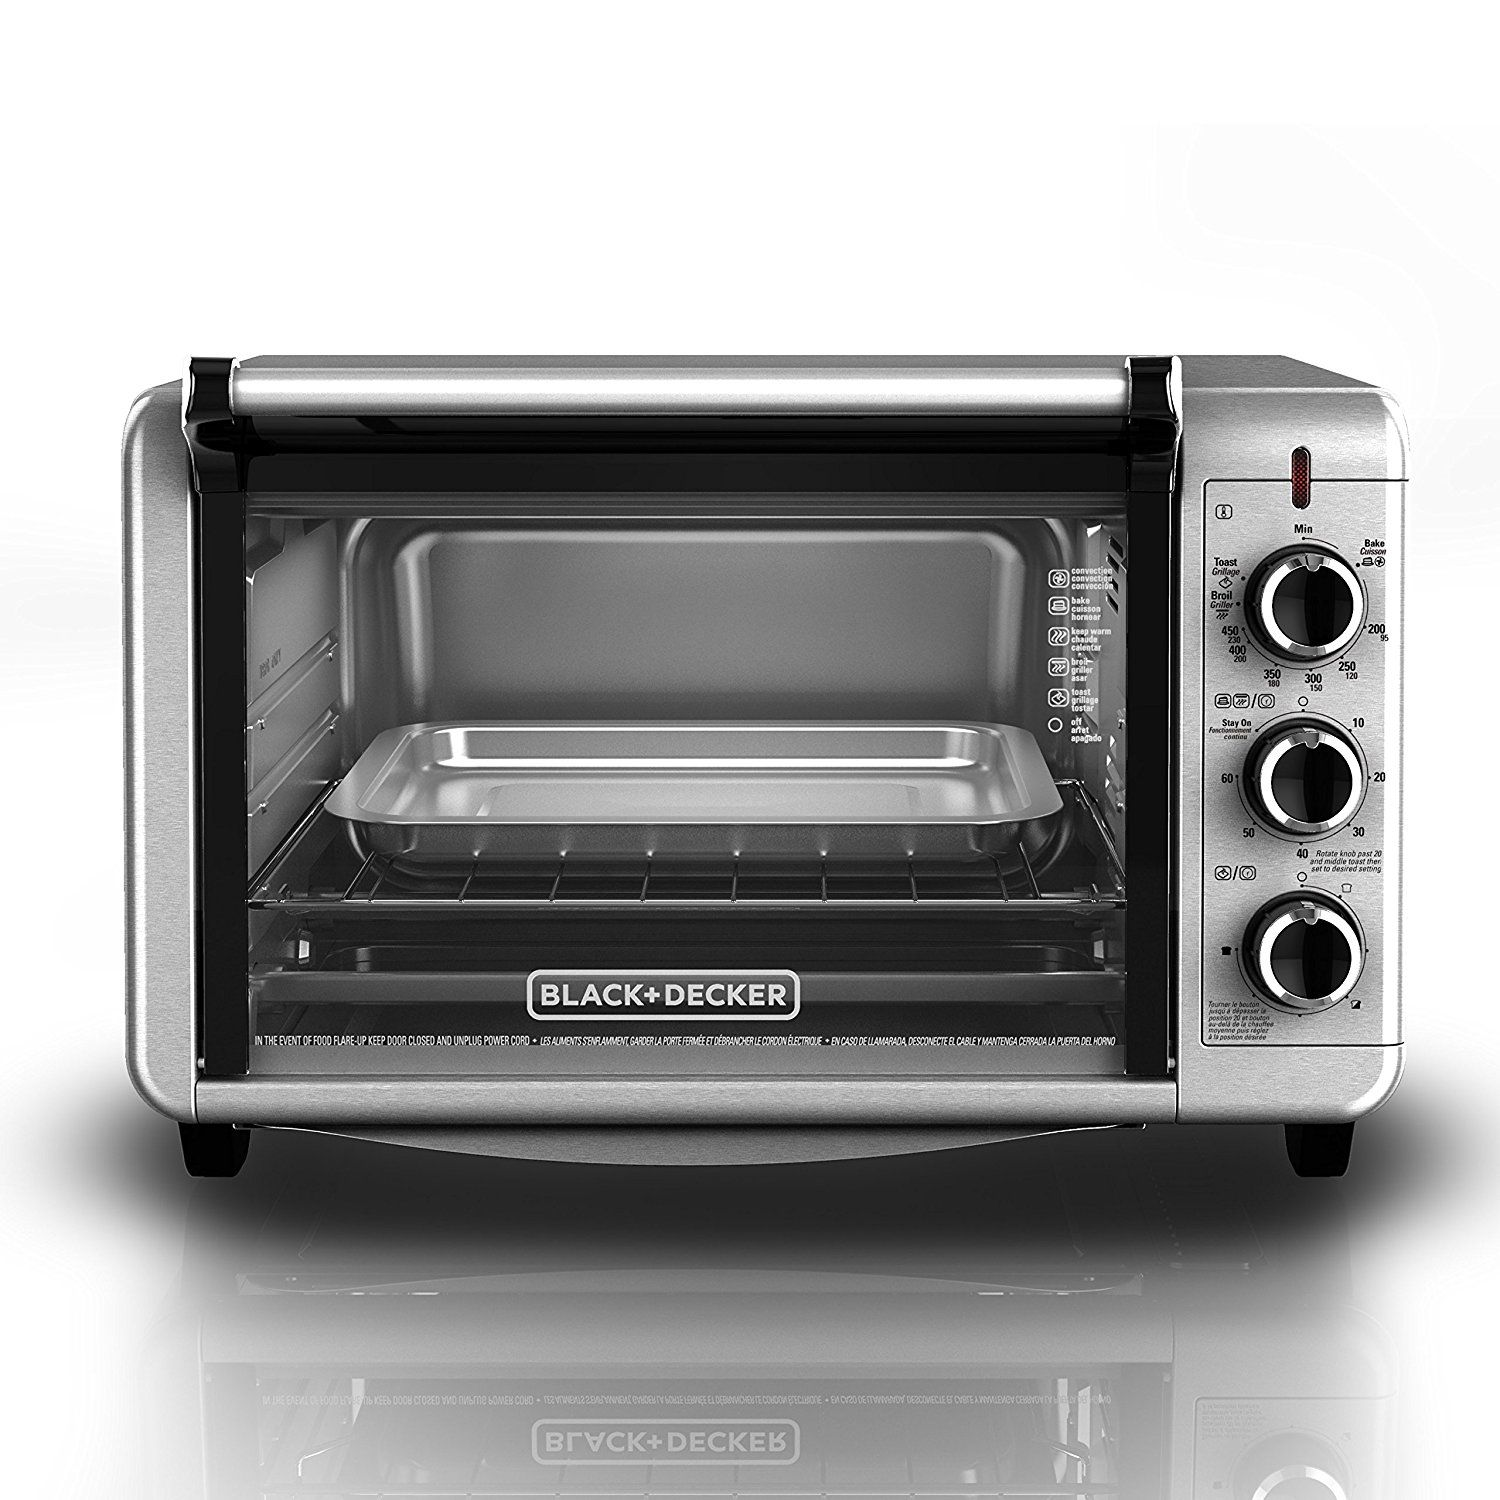 com bake includes toasting extra amazon convection oven wide broil slice toaster rack spacemaker decker pan dp black countertop